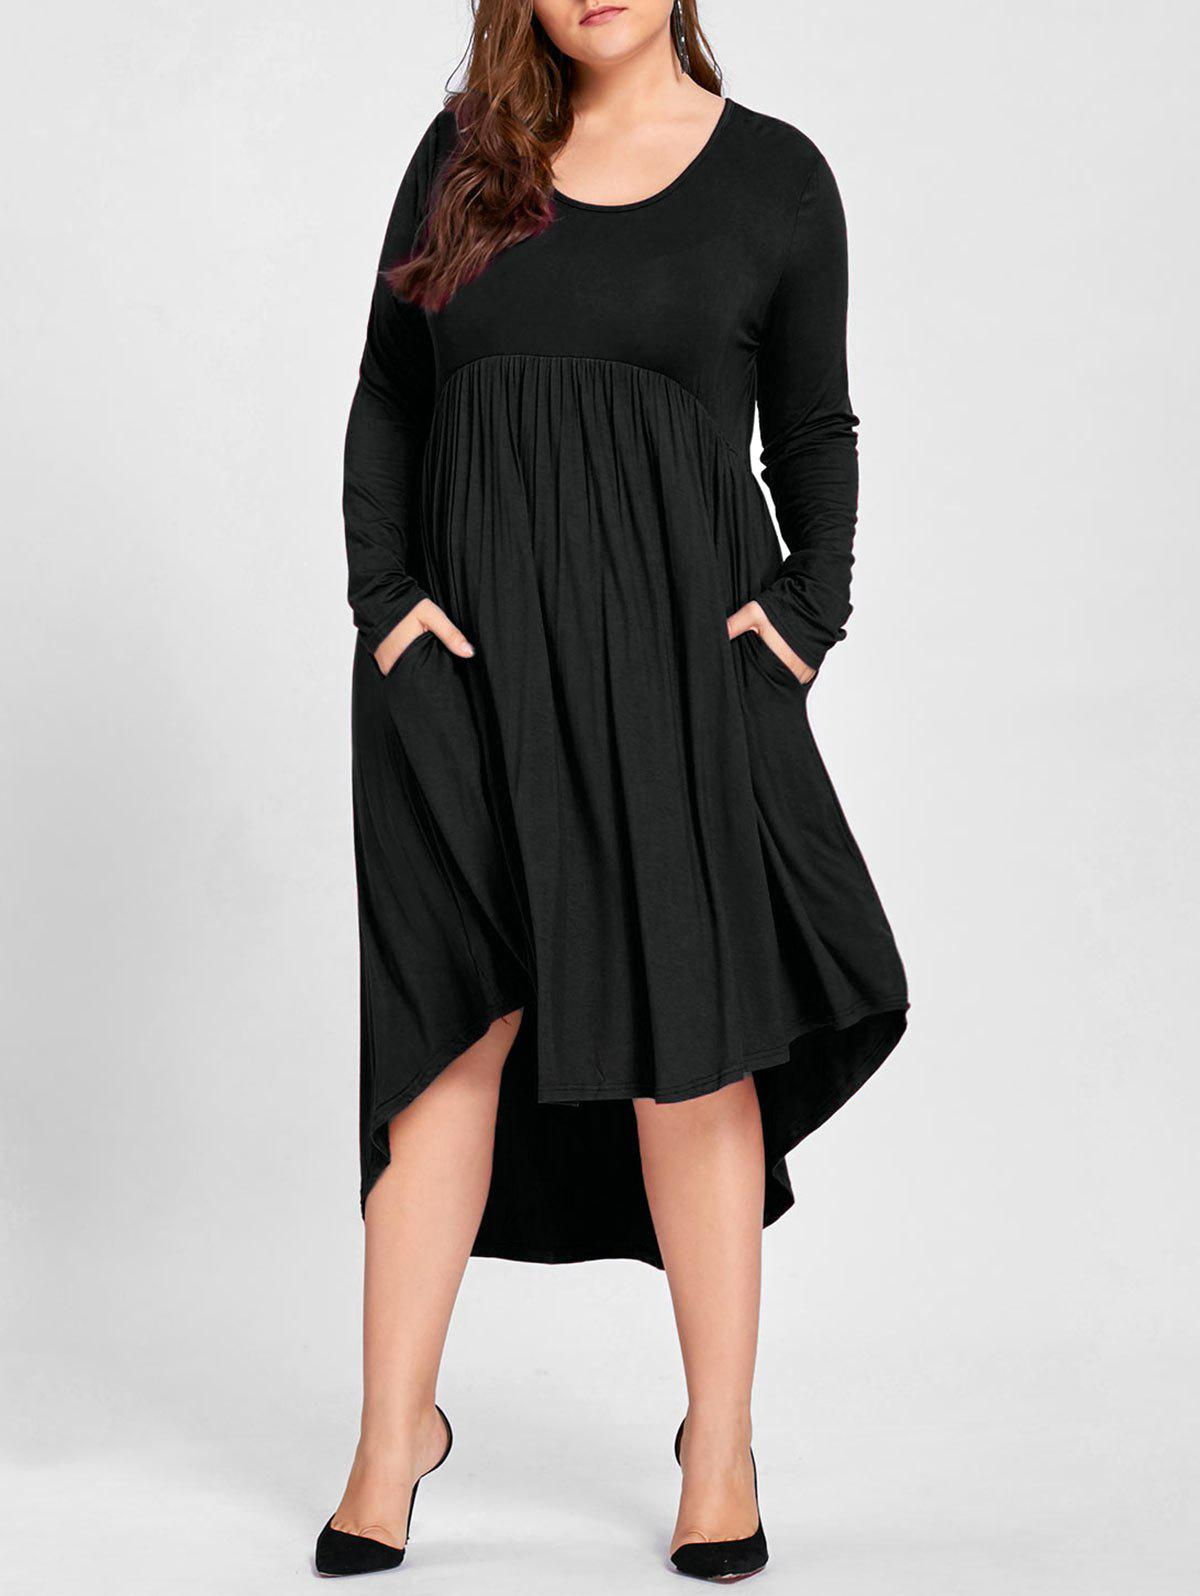 Plus Size Empire Waist High Low T Shirt Dress